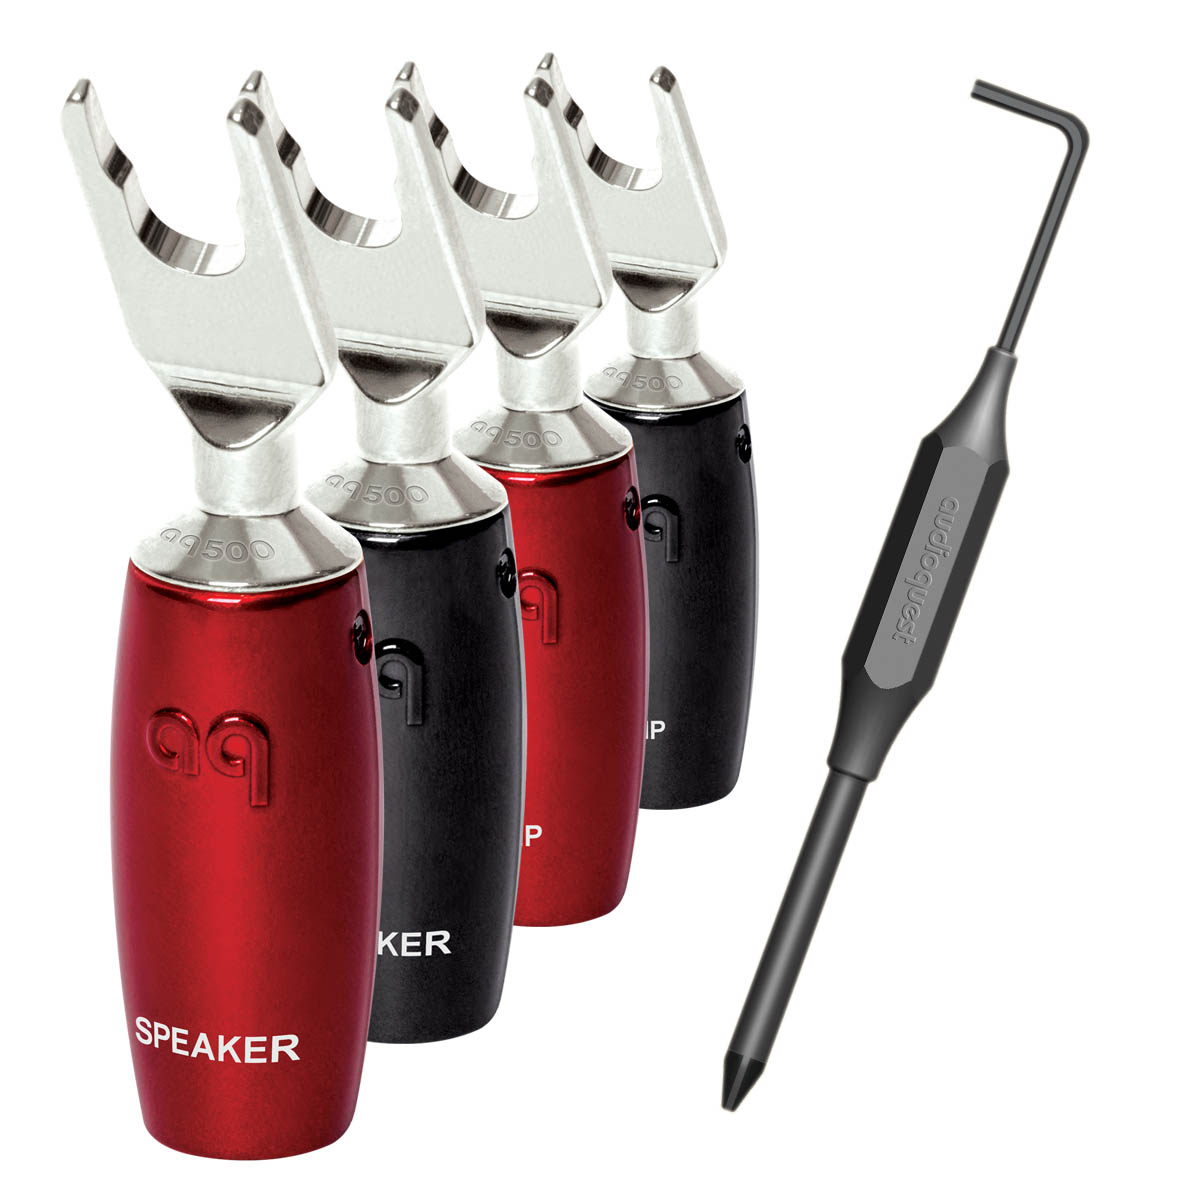 AudioQuest 507 Series Multi-Spade Silber 4er Set Lautsprecherstecker